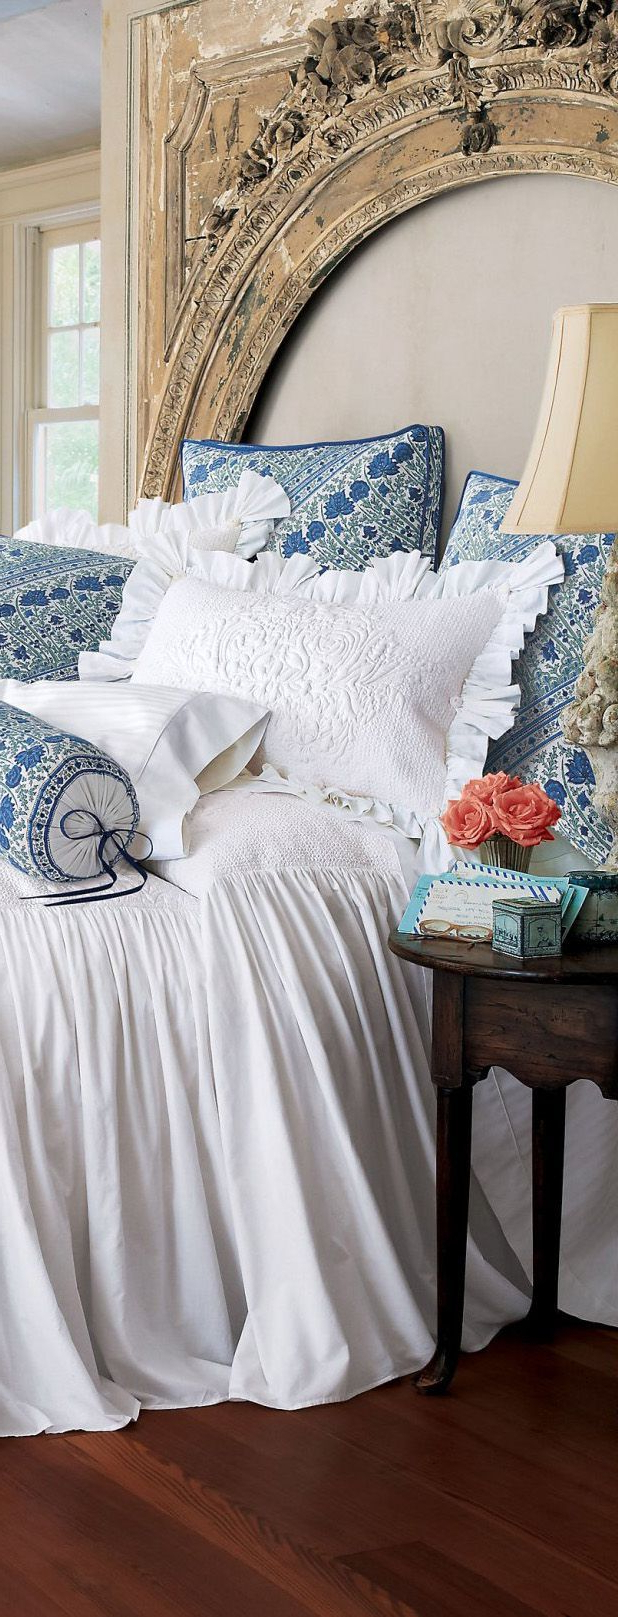 Soft Surroundings Bed Linen Sets Luxury Bedding Sets